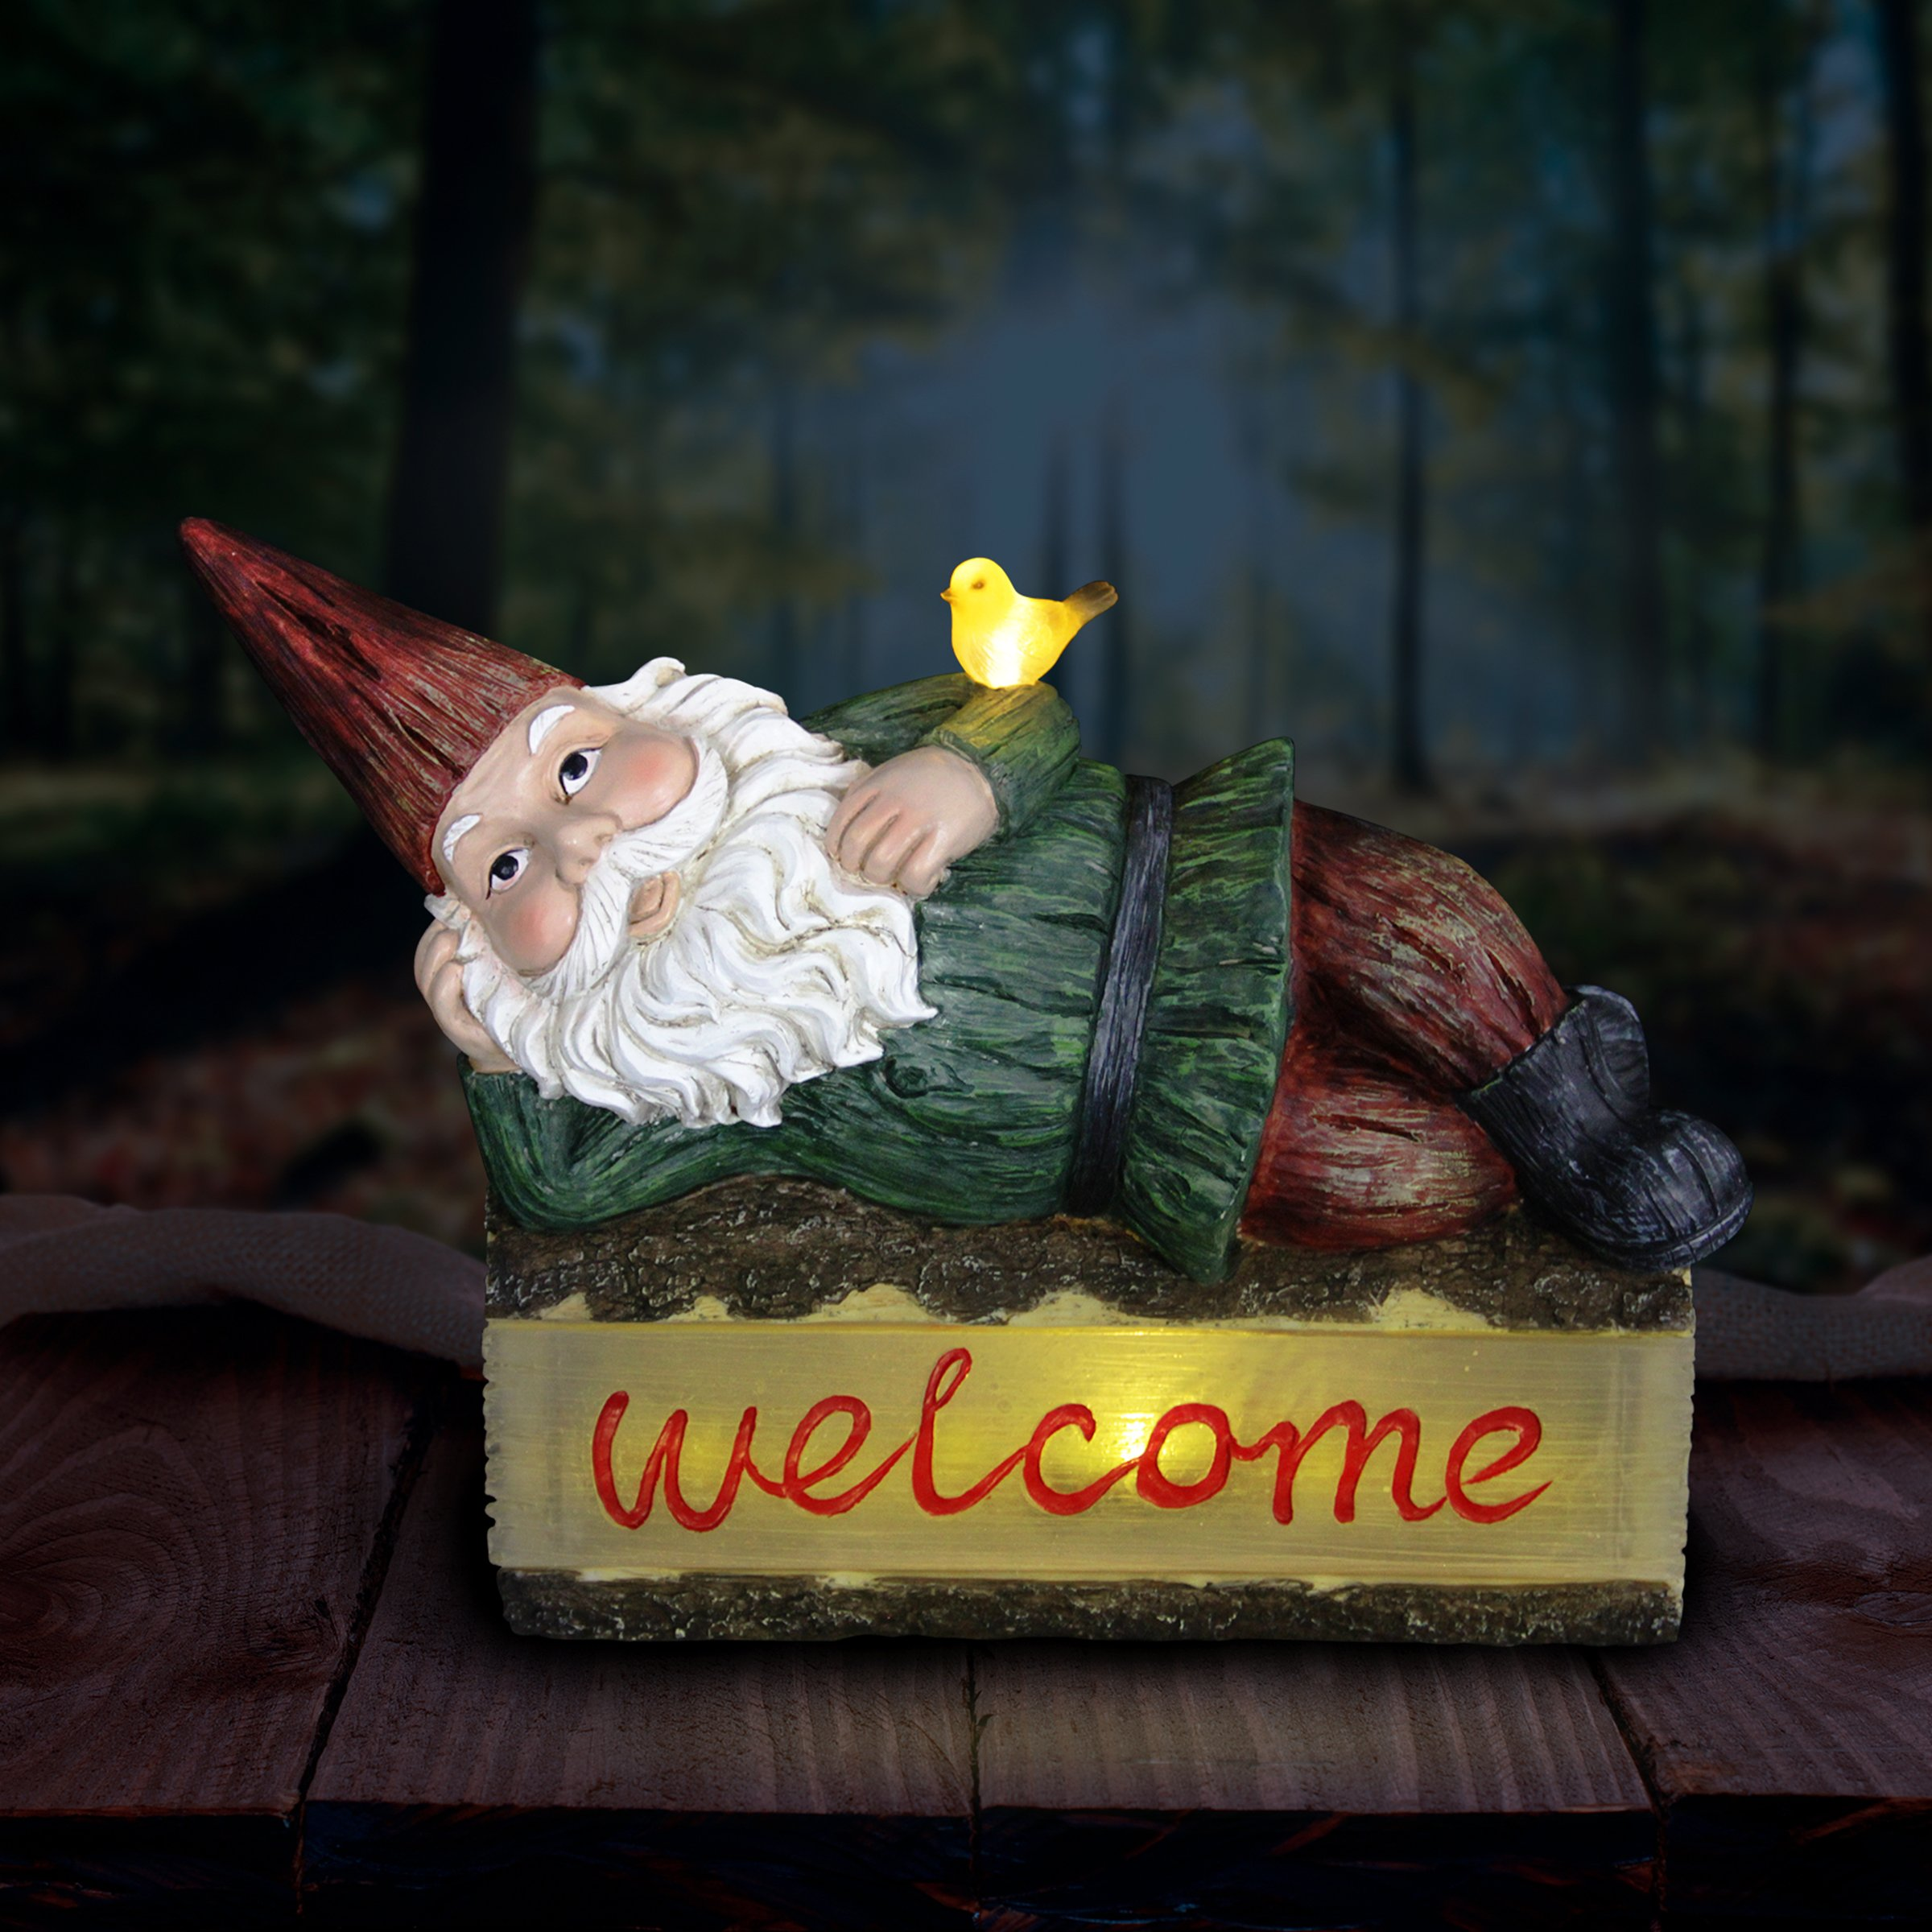 Exhart Solar Gnome Welcome Sign Garden Statue - Light Up Gnome Statue on Welcome Sign Log w/Resin Décor, Whimsical, Durable & Solar Powered- Perfect for Porch & Garden 16.14'' L x 6.5'' W x 14.17'' H